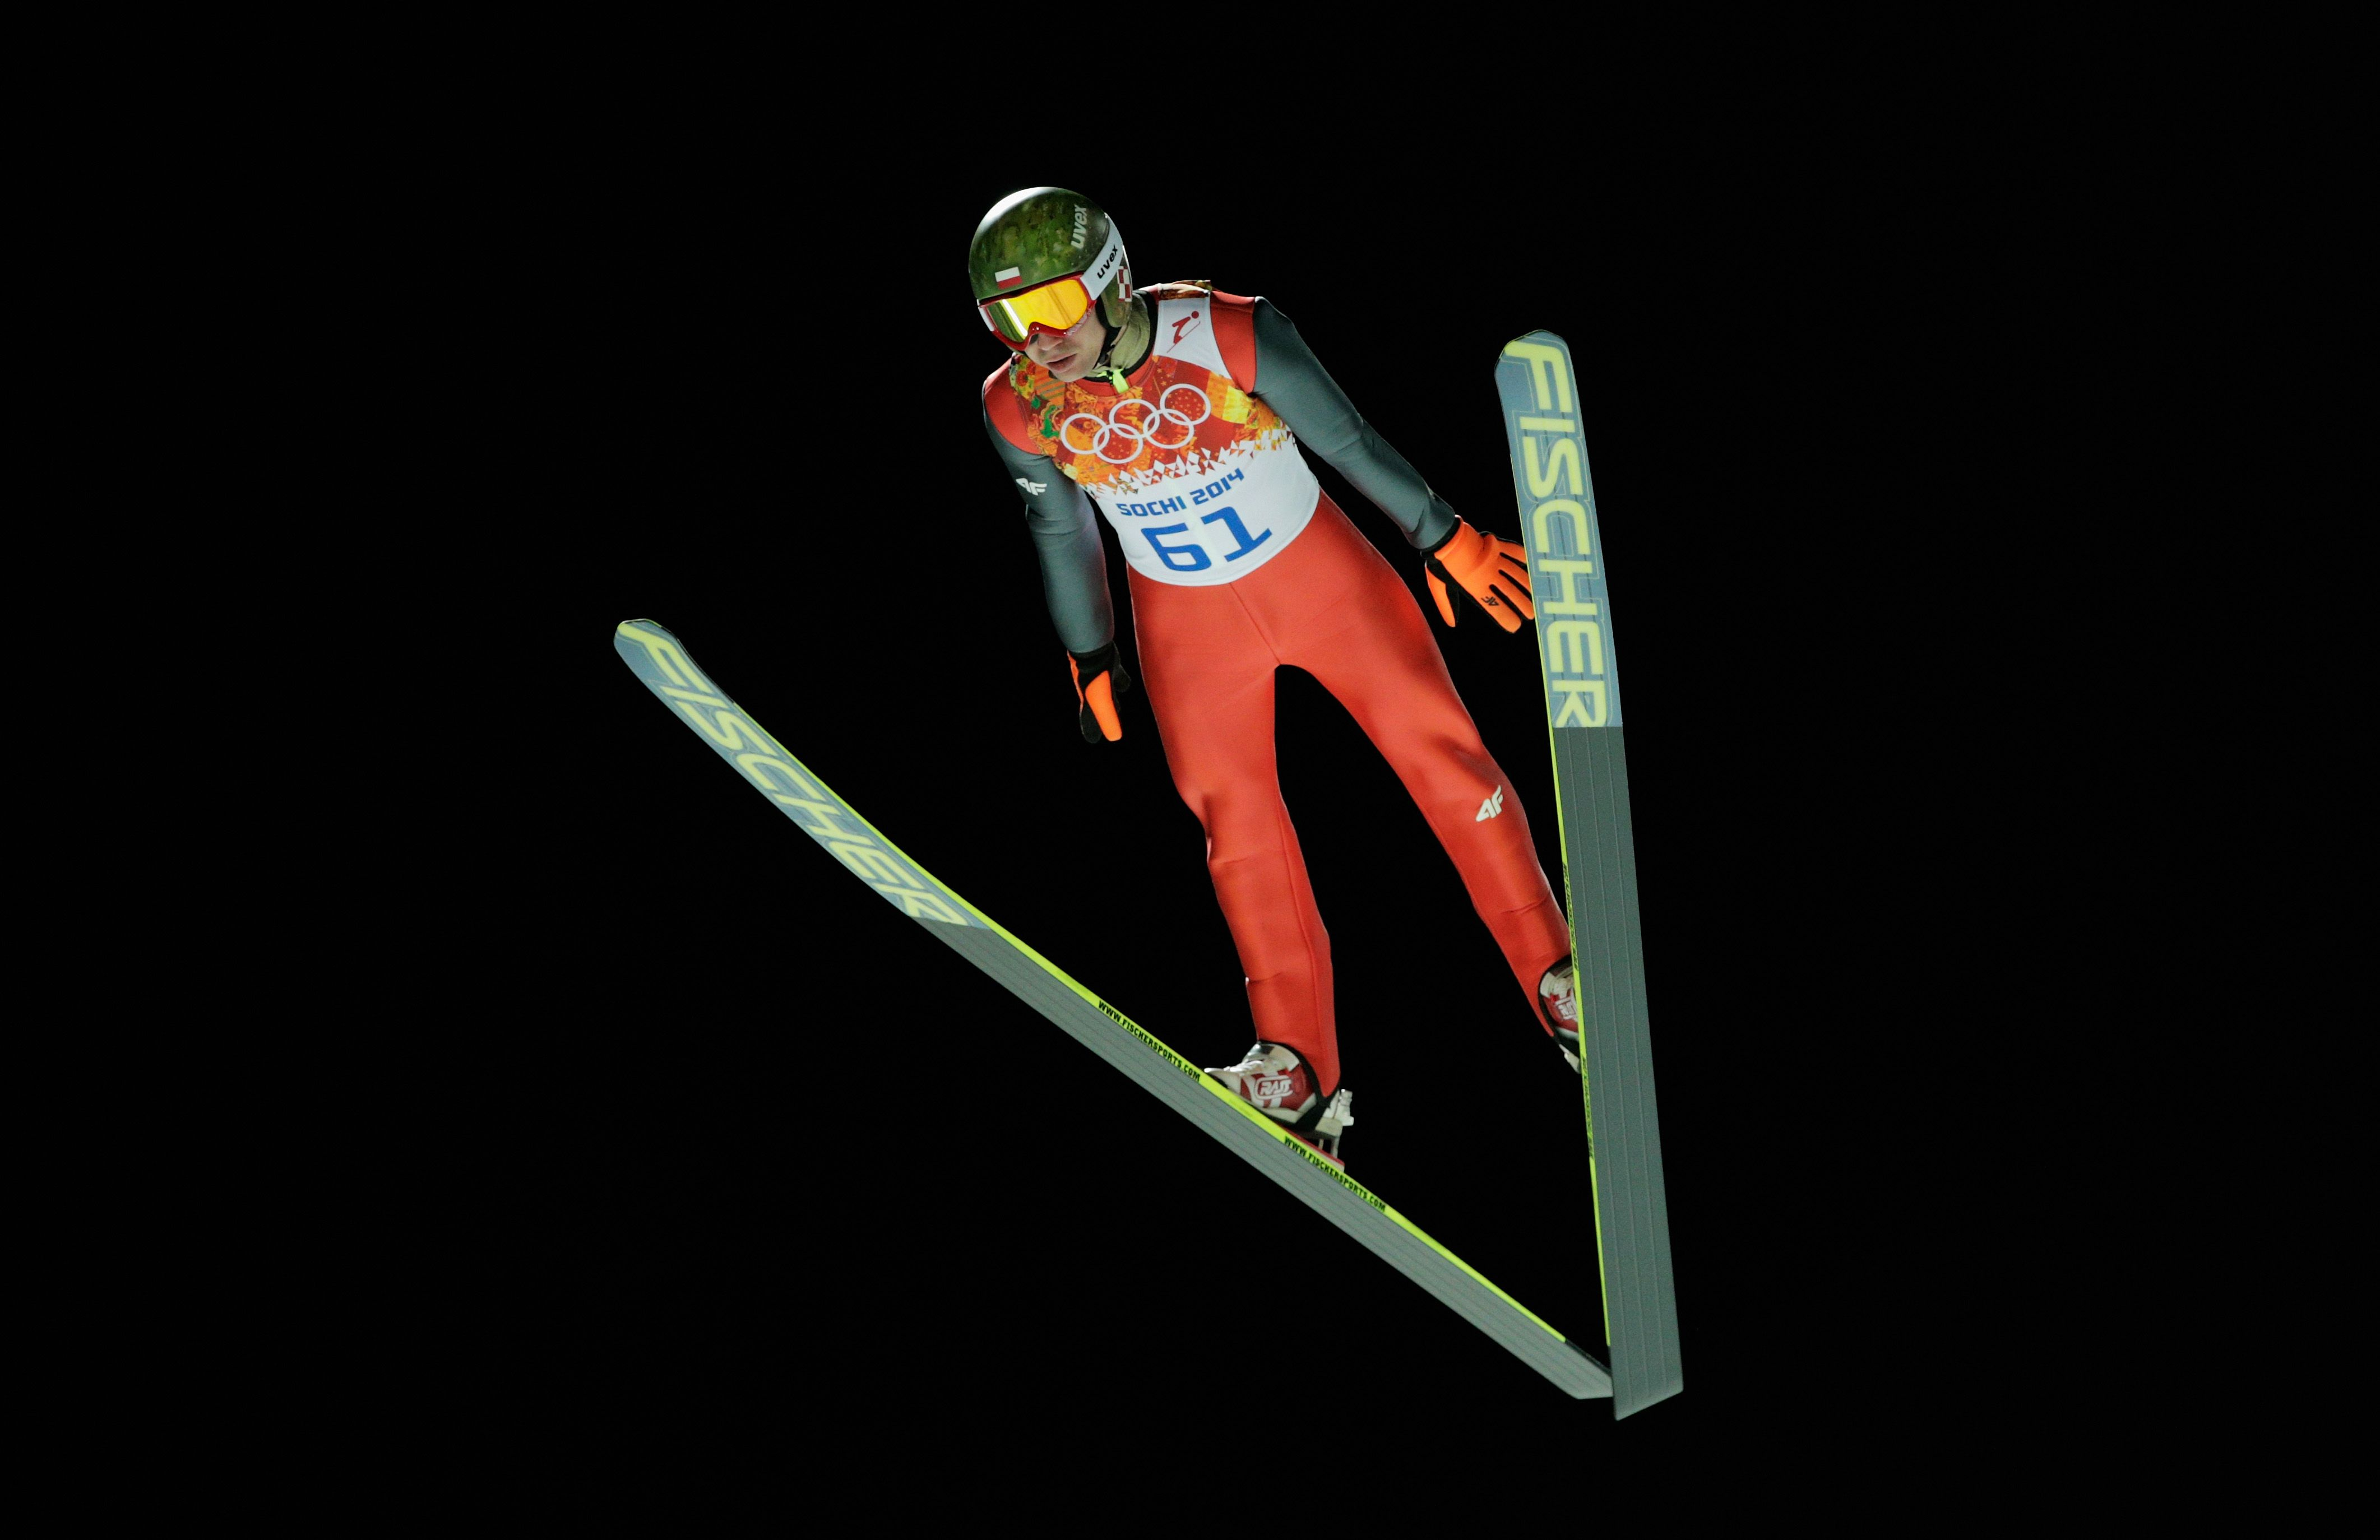 Kamil Stoch Of Poland Jumps During The Men S Large Hill Individual Qualification C Getty Images Ski Jumping Skiing Jump